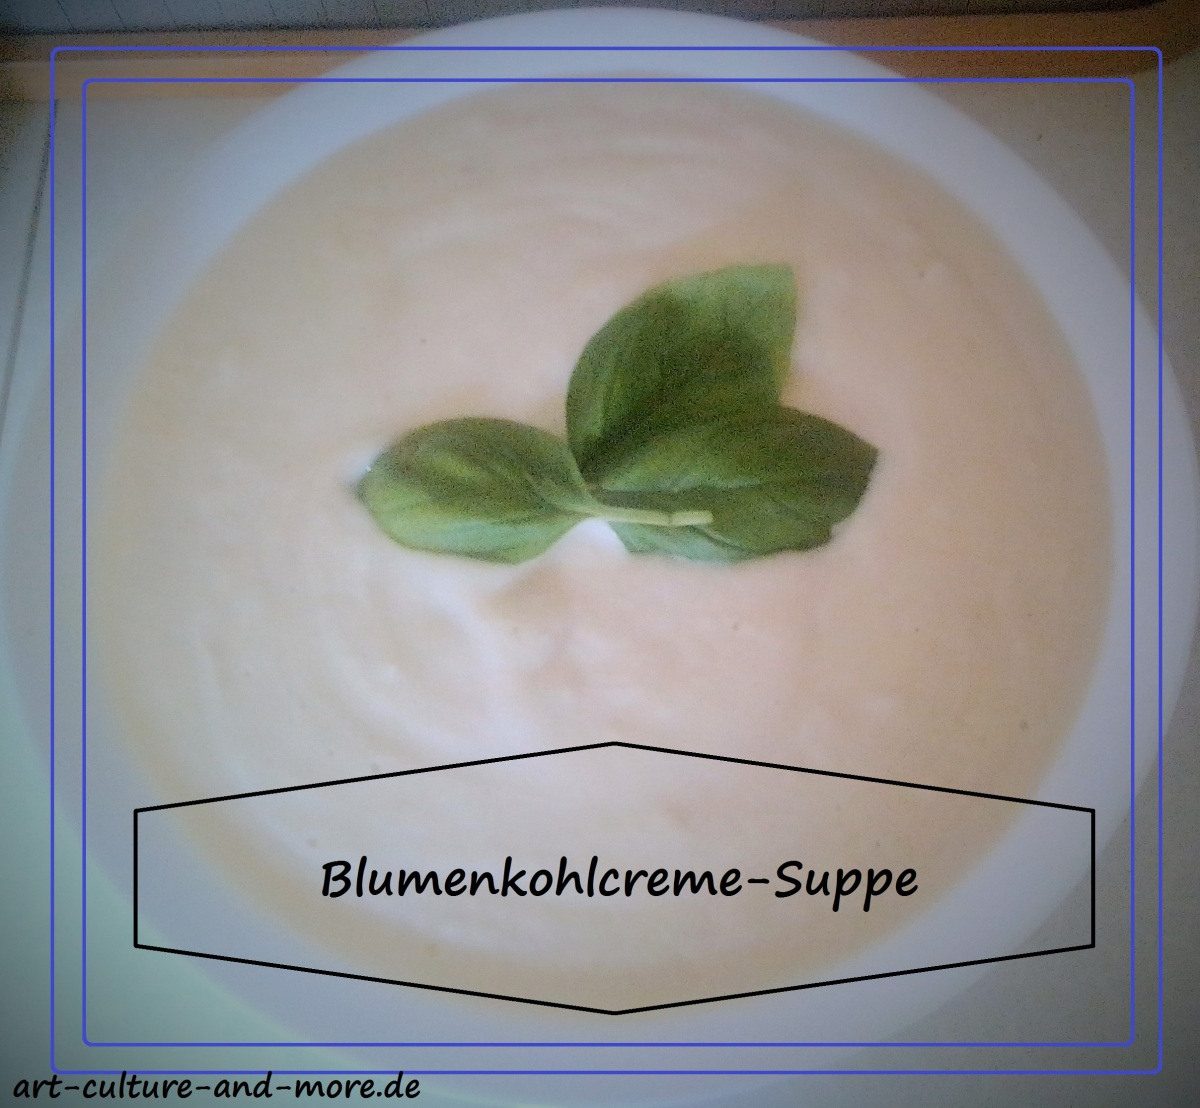 Blumenkohlcreme-Suppe [Low Carb]